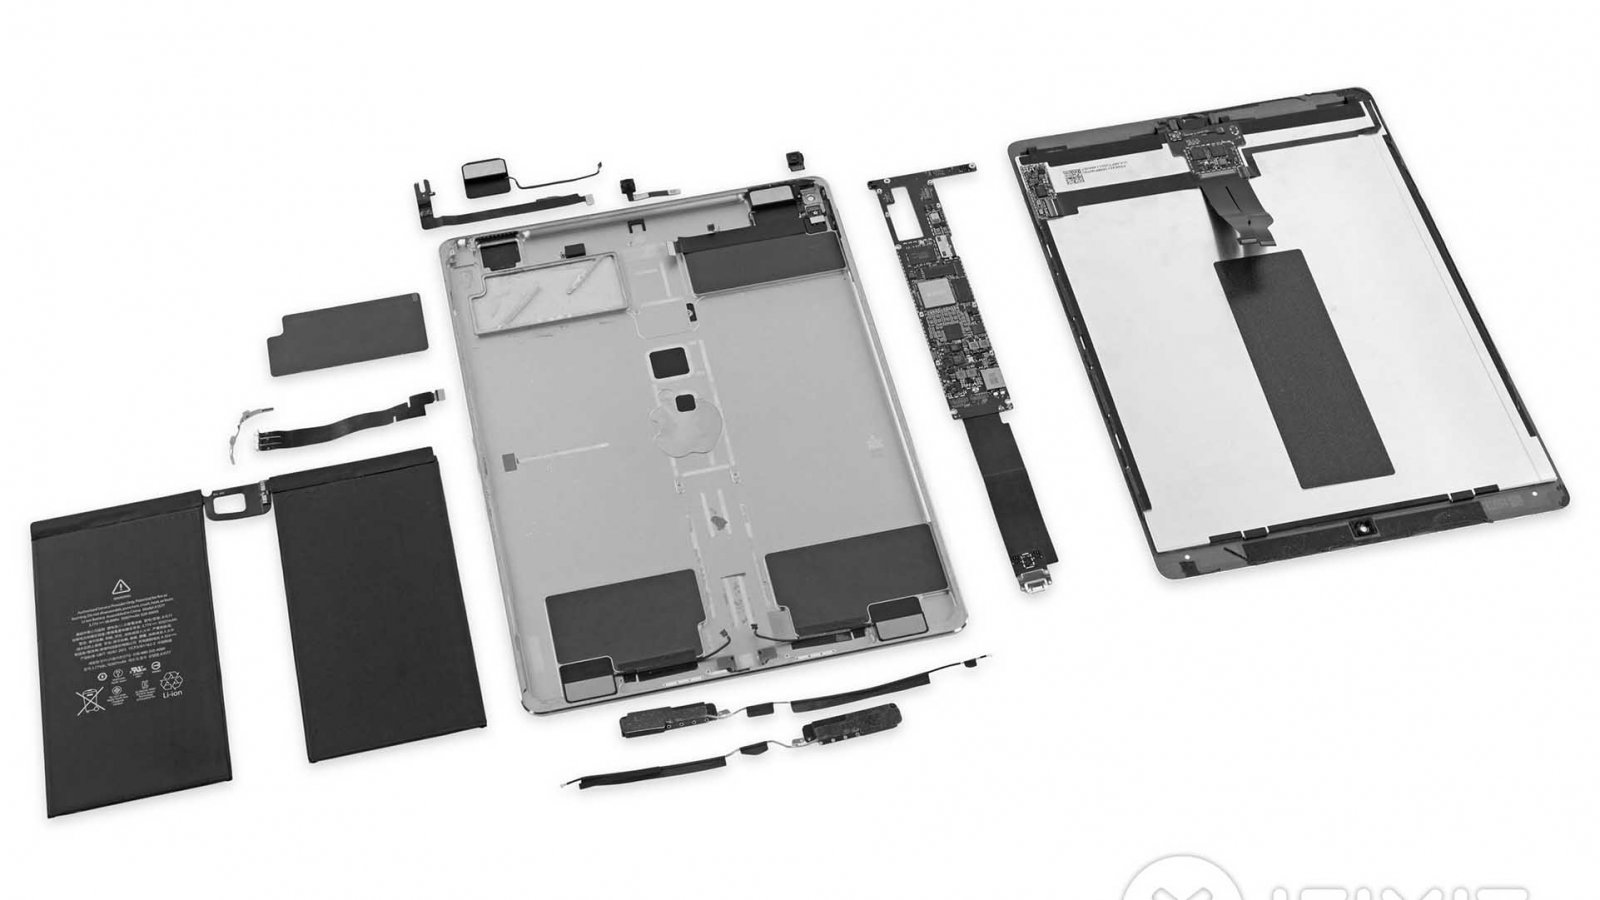 iPad Pro Teardown Wallpapers Are Here!